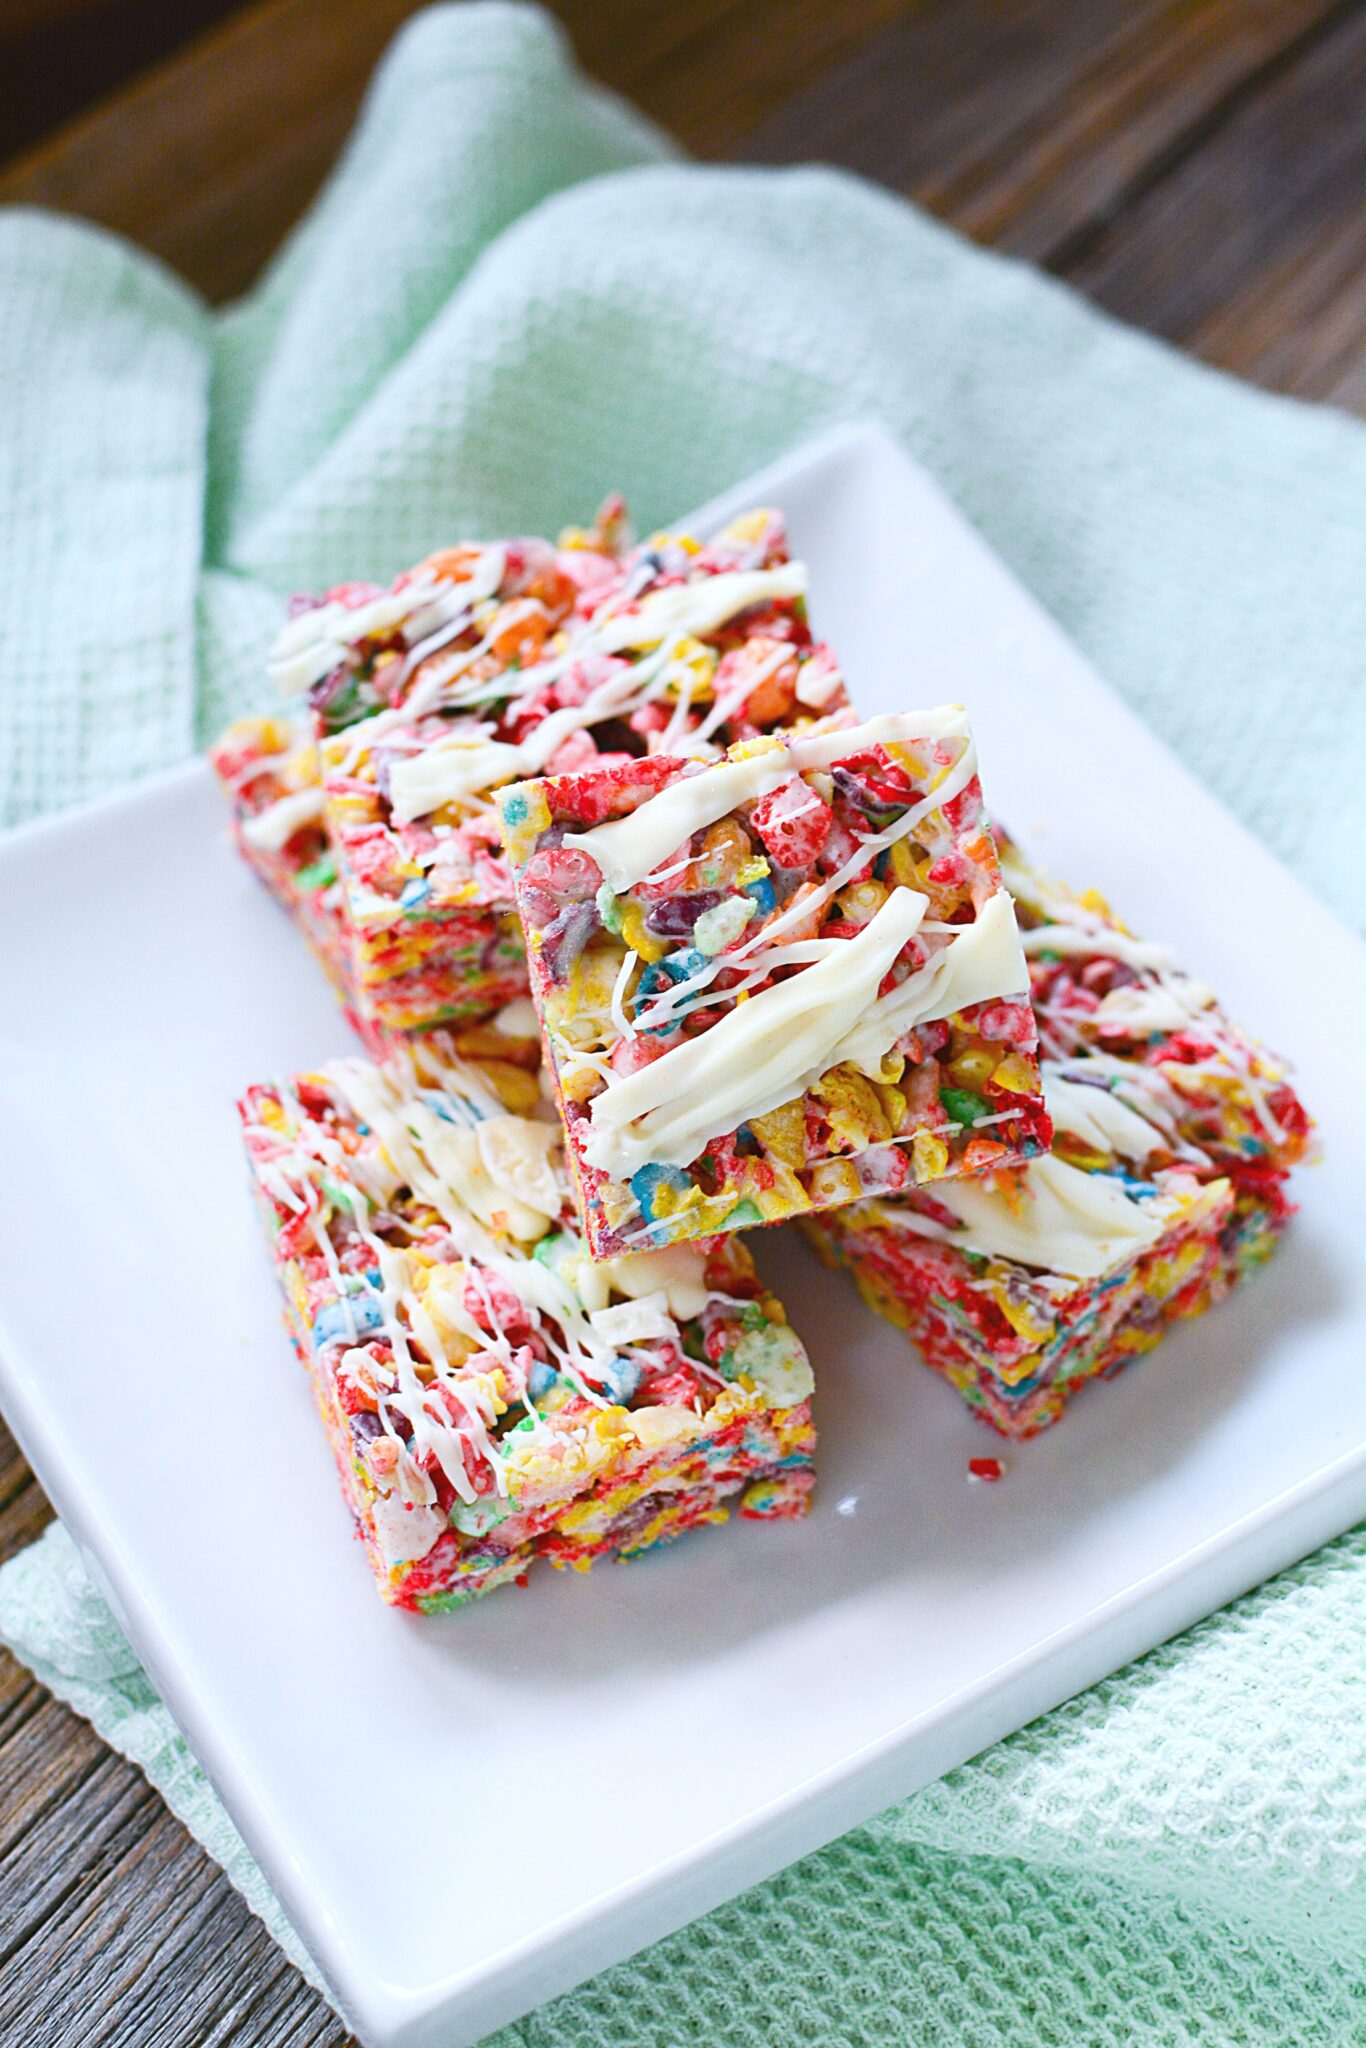 4 Fruity Pebbles Squares on a white plate, atop a green napkin. Treats are placed on a wooden table.